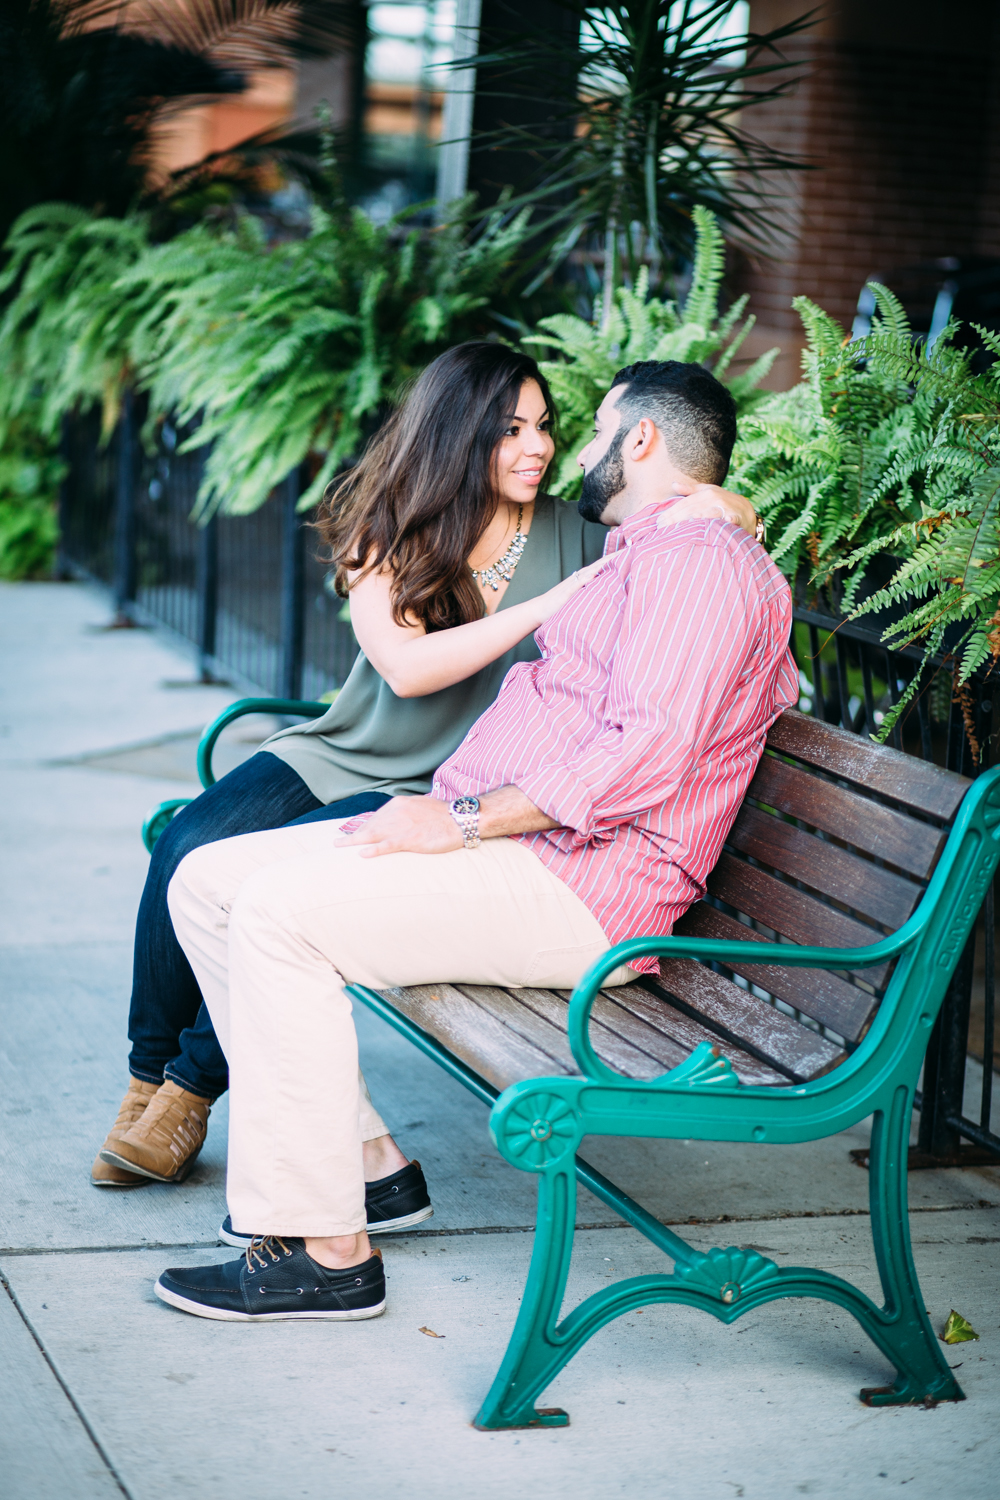 Ashley-reed-photography-pittsburgh-engagement-engagementphotography-engagementphotographer-stationsquare-statio-square-pittsburghengagementphotography-34.jpg